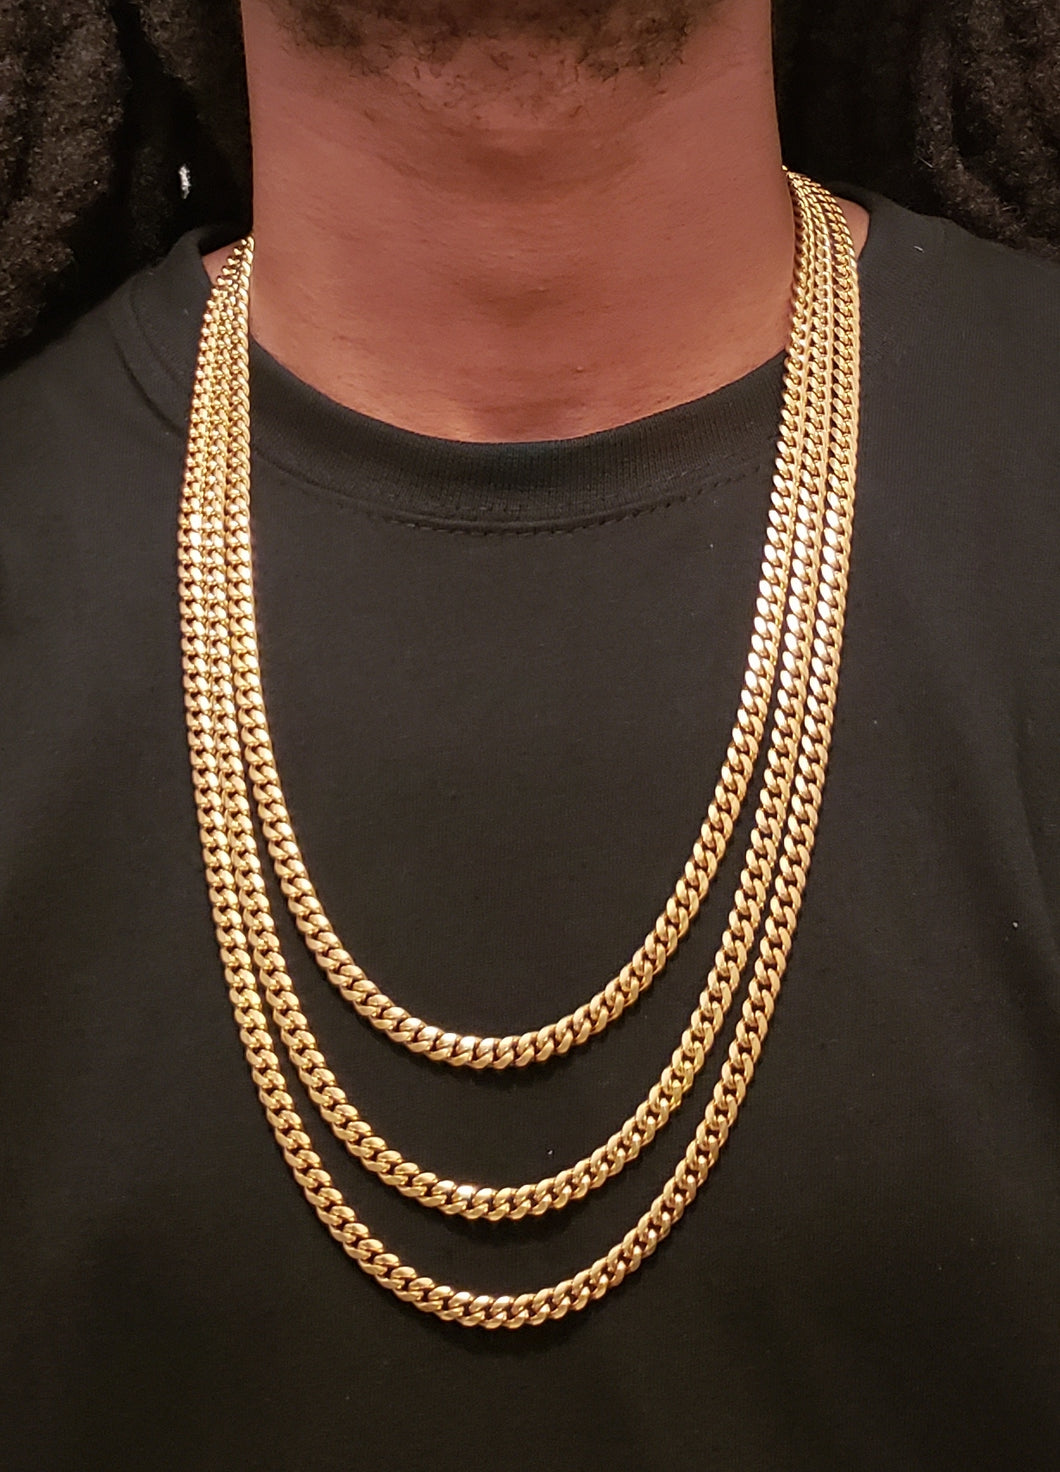 3chain 6mm setup 14k gold plated Miami Cuban link chains